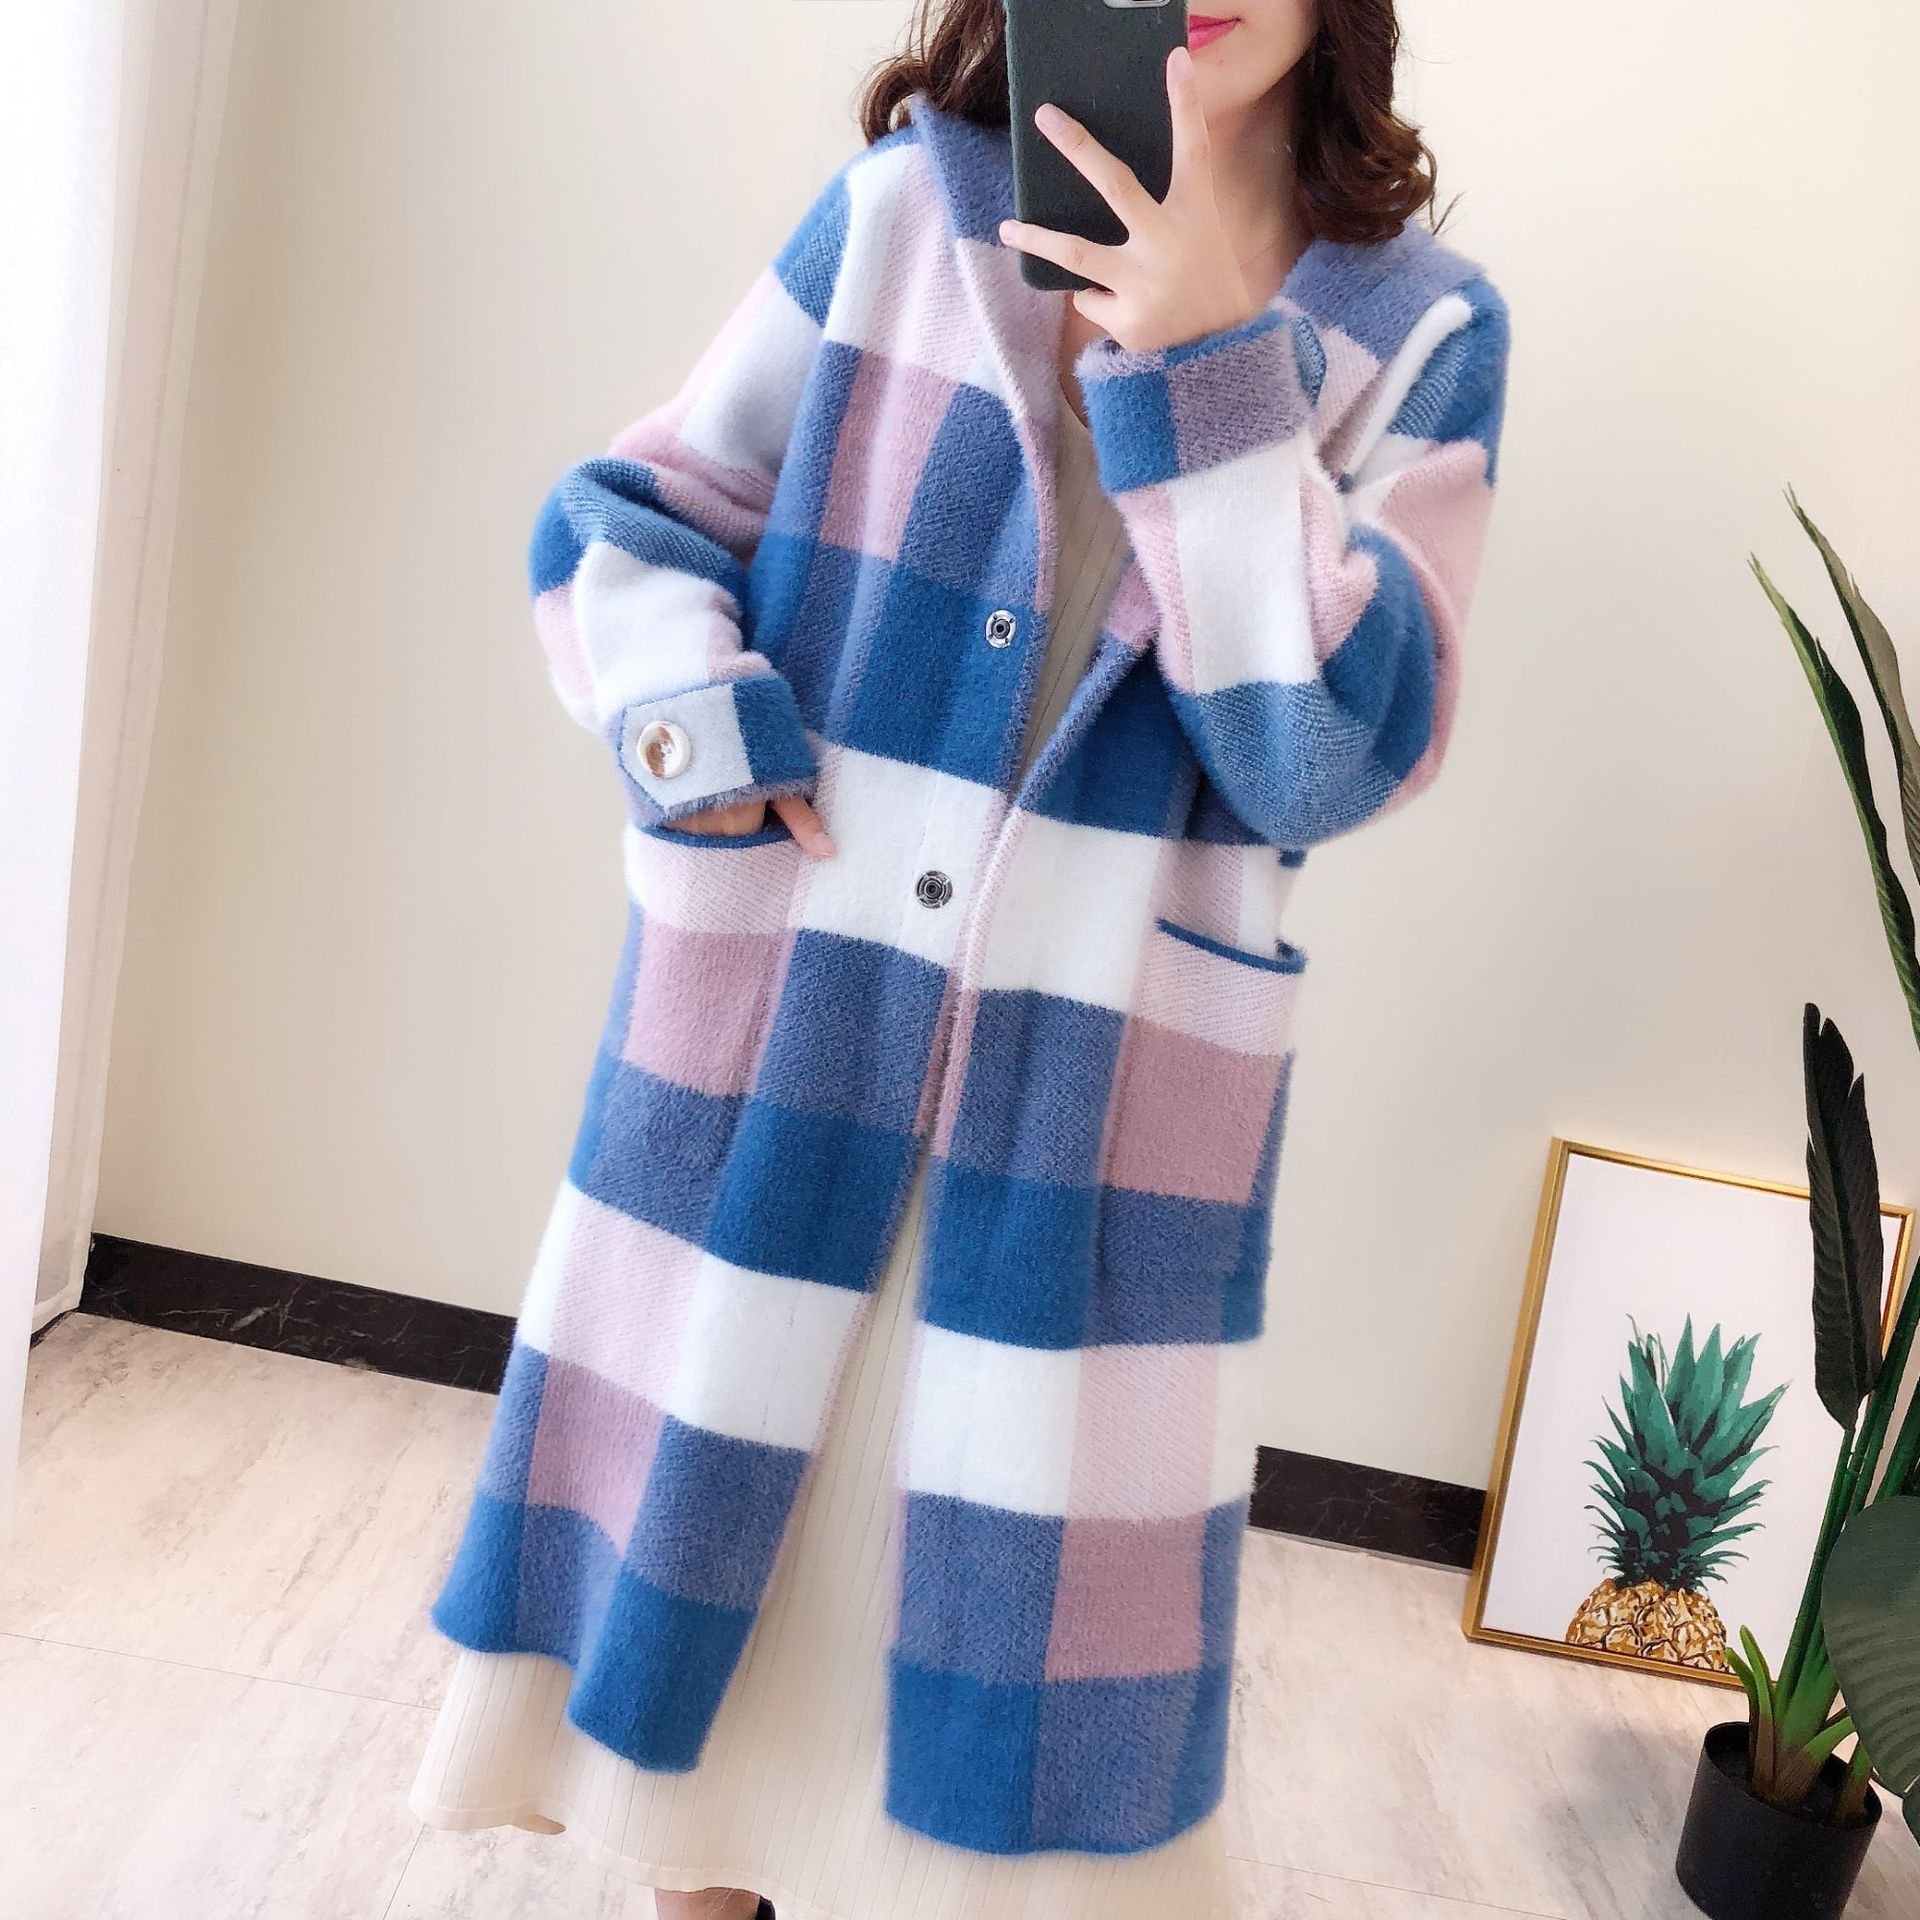 Autumn Winter New Plaid Mink Cashmere Coats Knitting Hooded Sweater Long Cardigan Coat Women Loose Warm Sweaters Thick Outerwear in Cardigans from Women 39 s Clothing